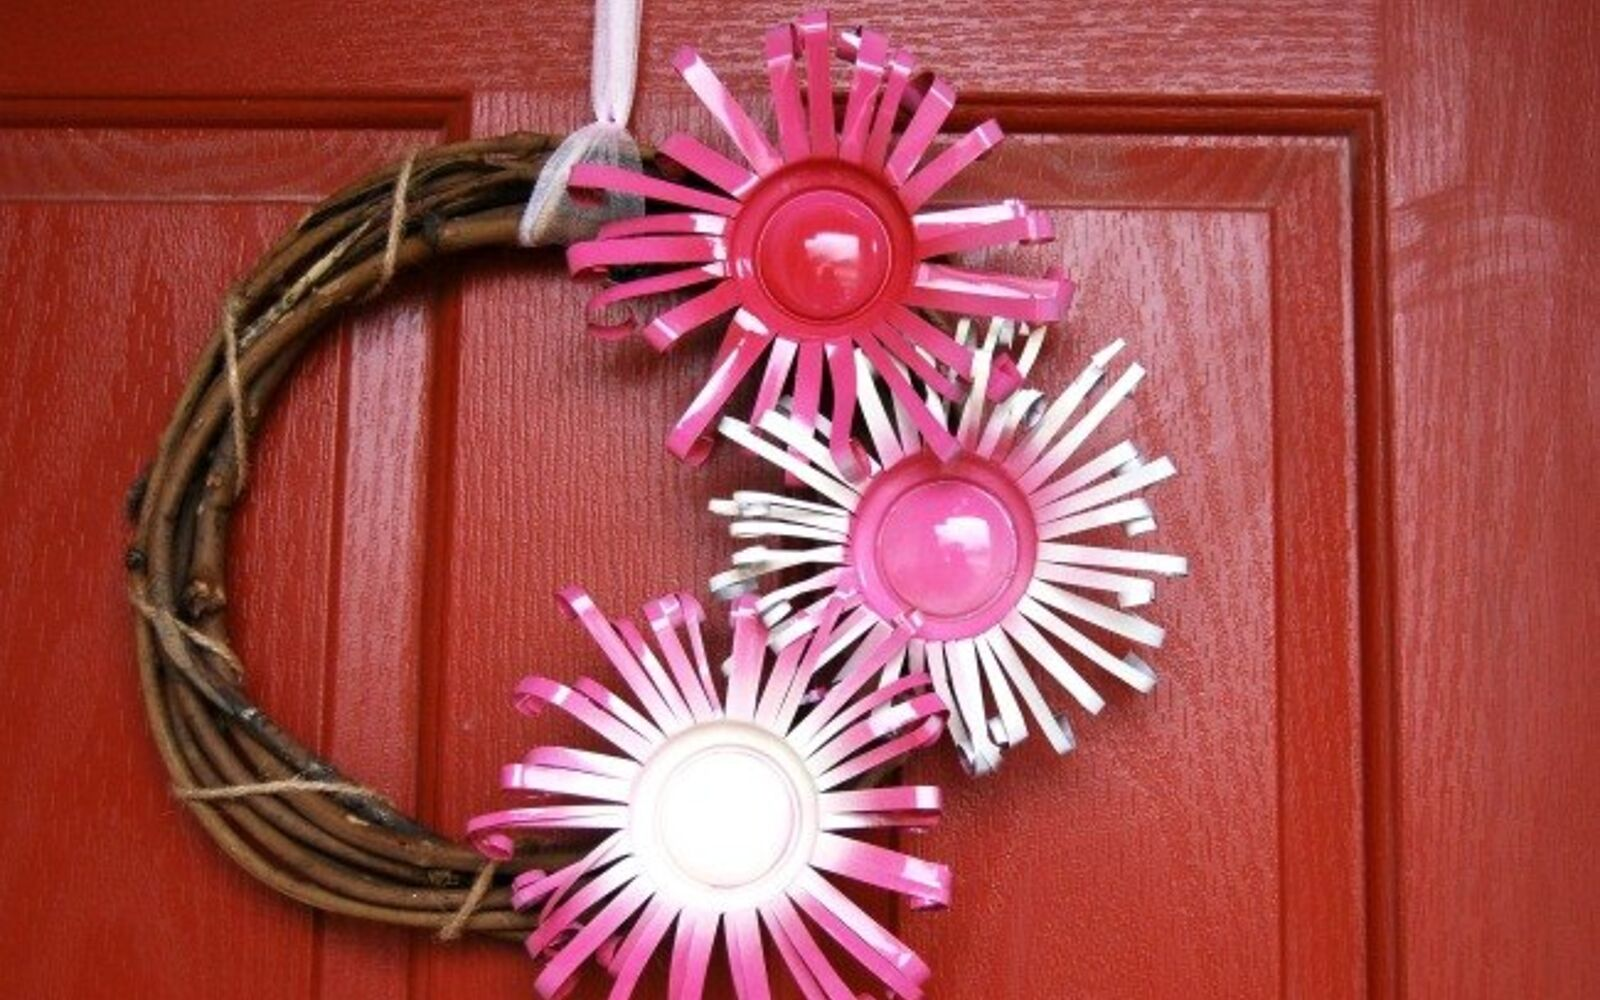 s save your old cans for these 30 home decor ideas, Cut them into wreath flowers